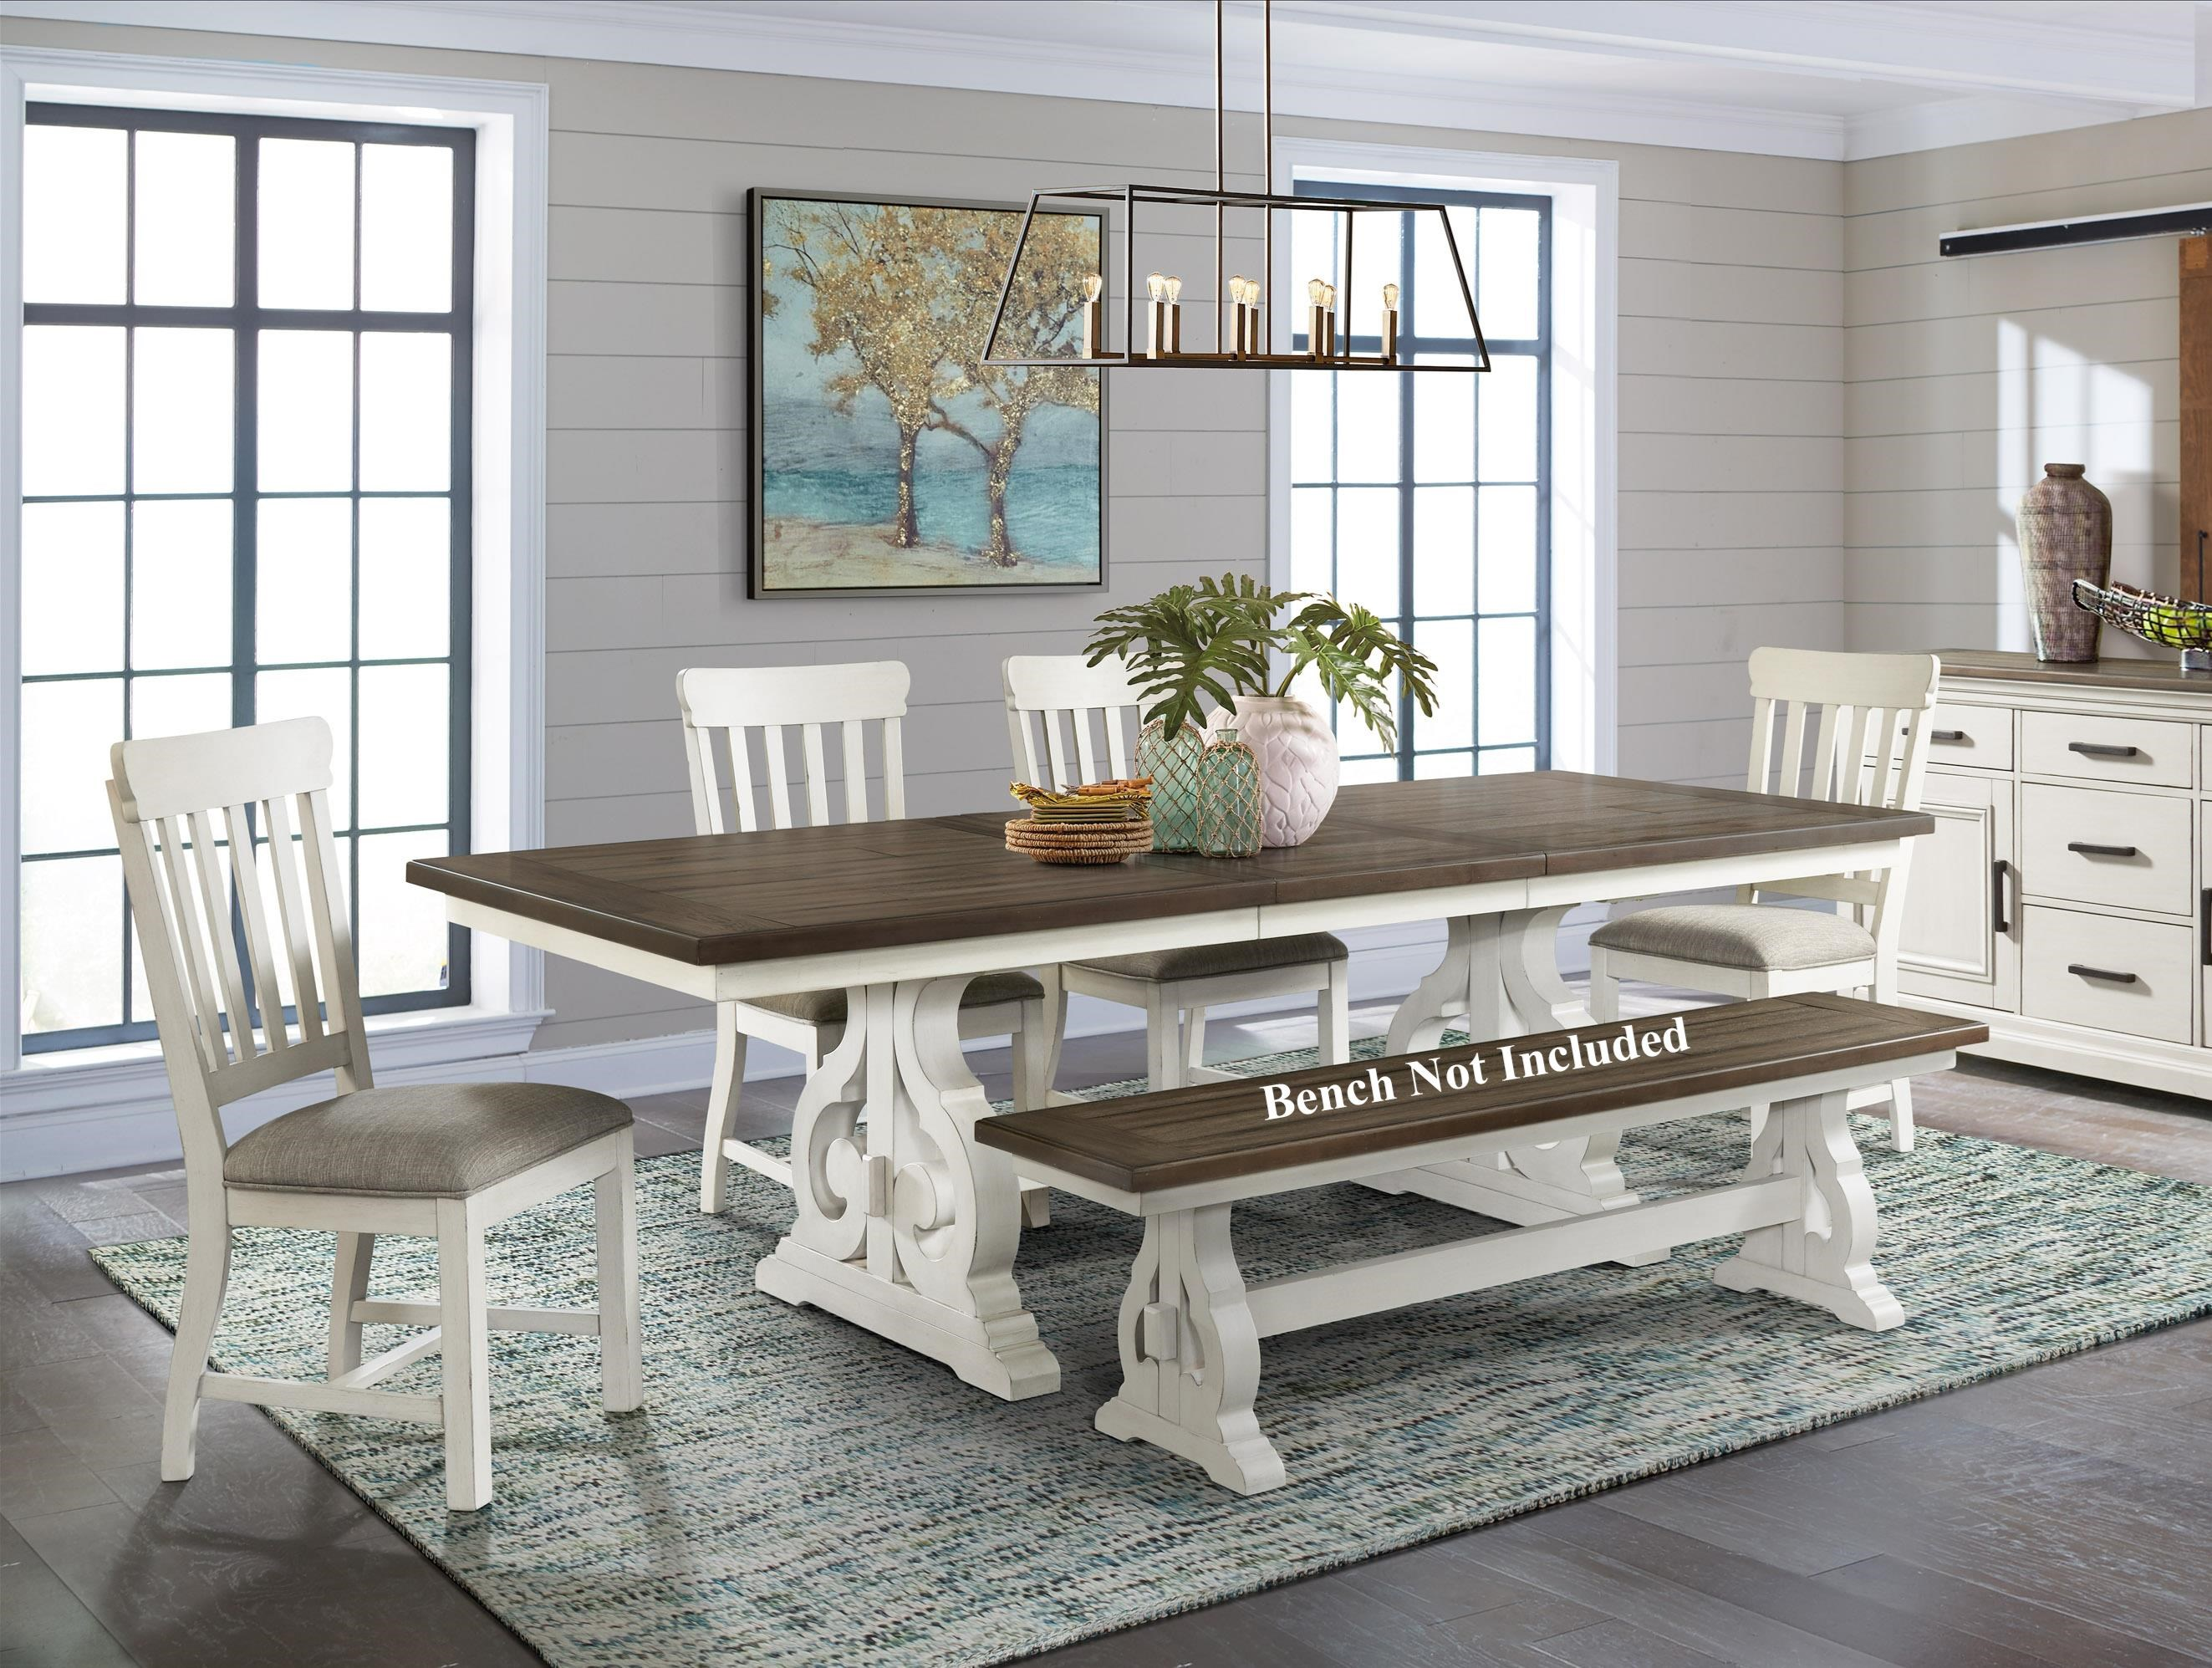 Drake 5 Piece Table and Chair Set by Intercon at Wayside Furniture